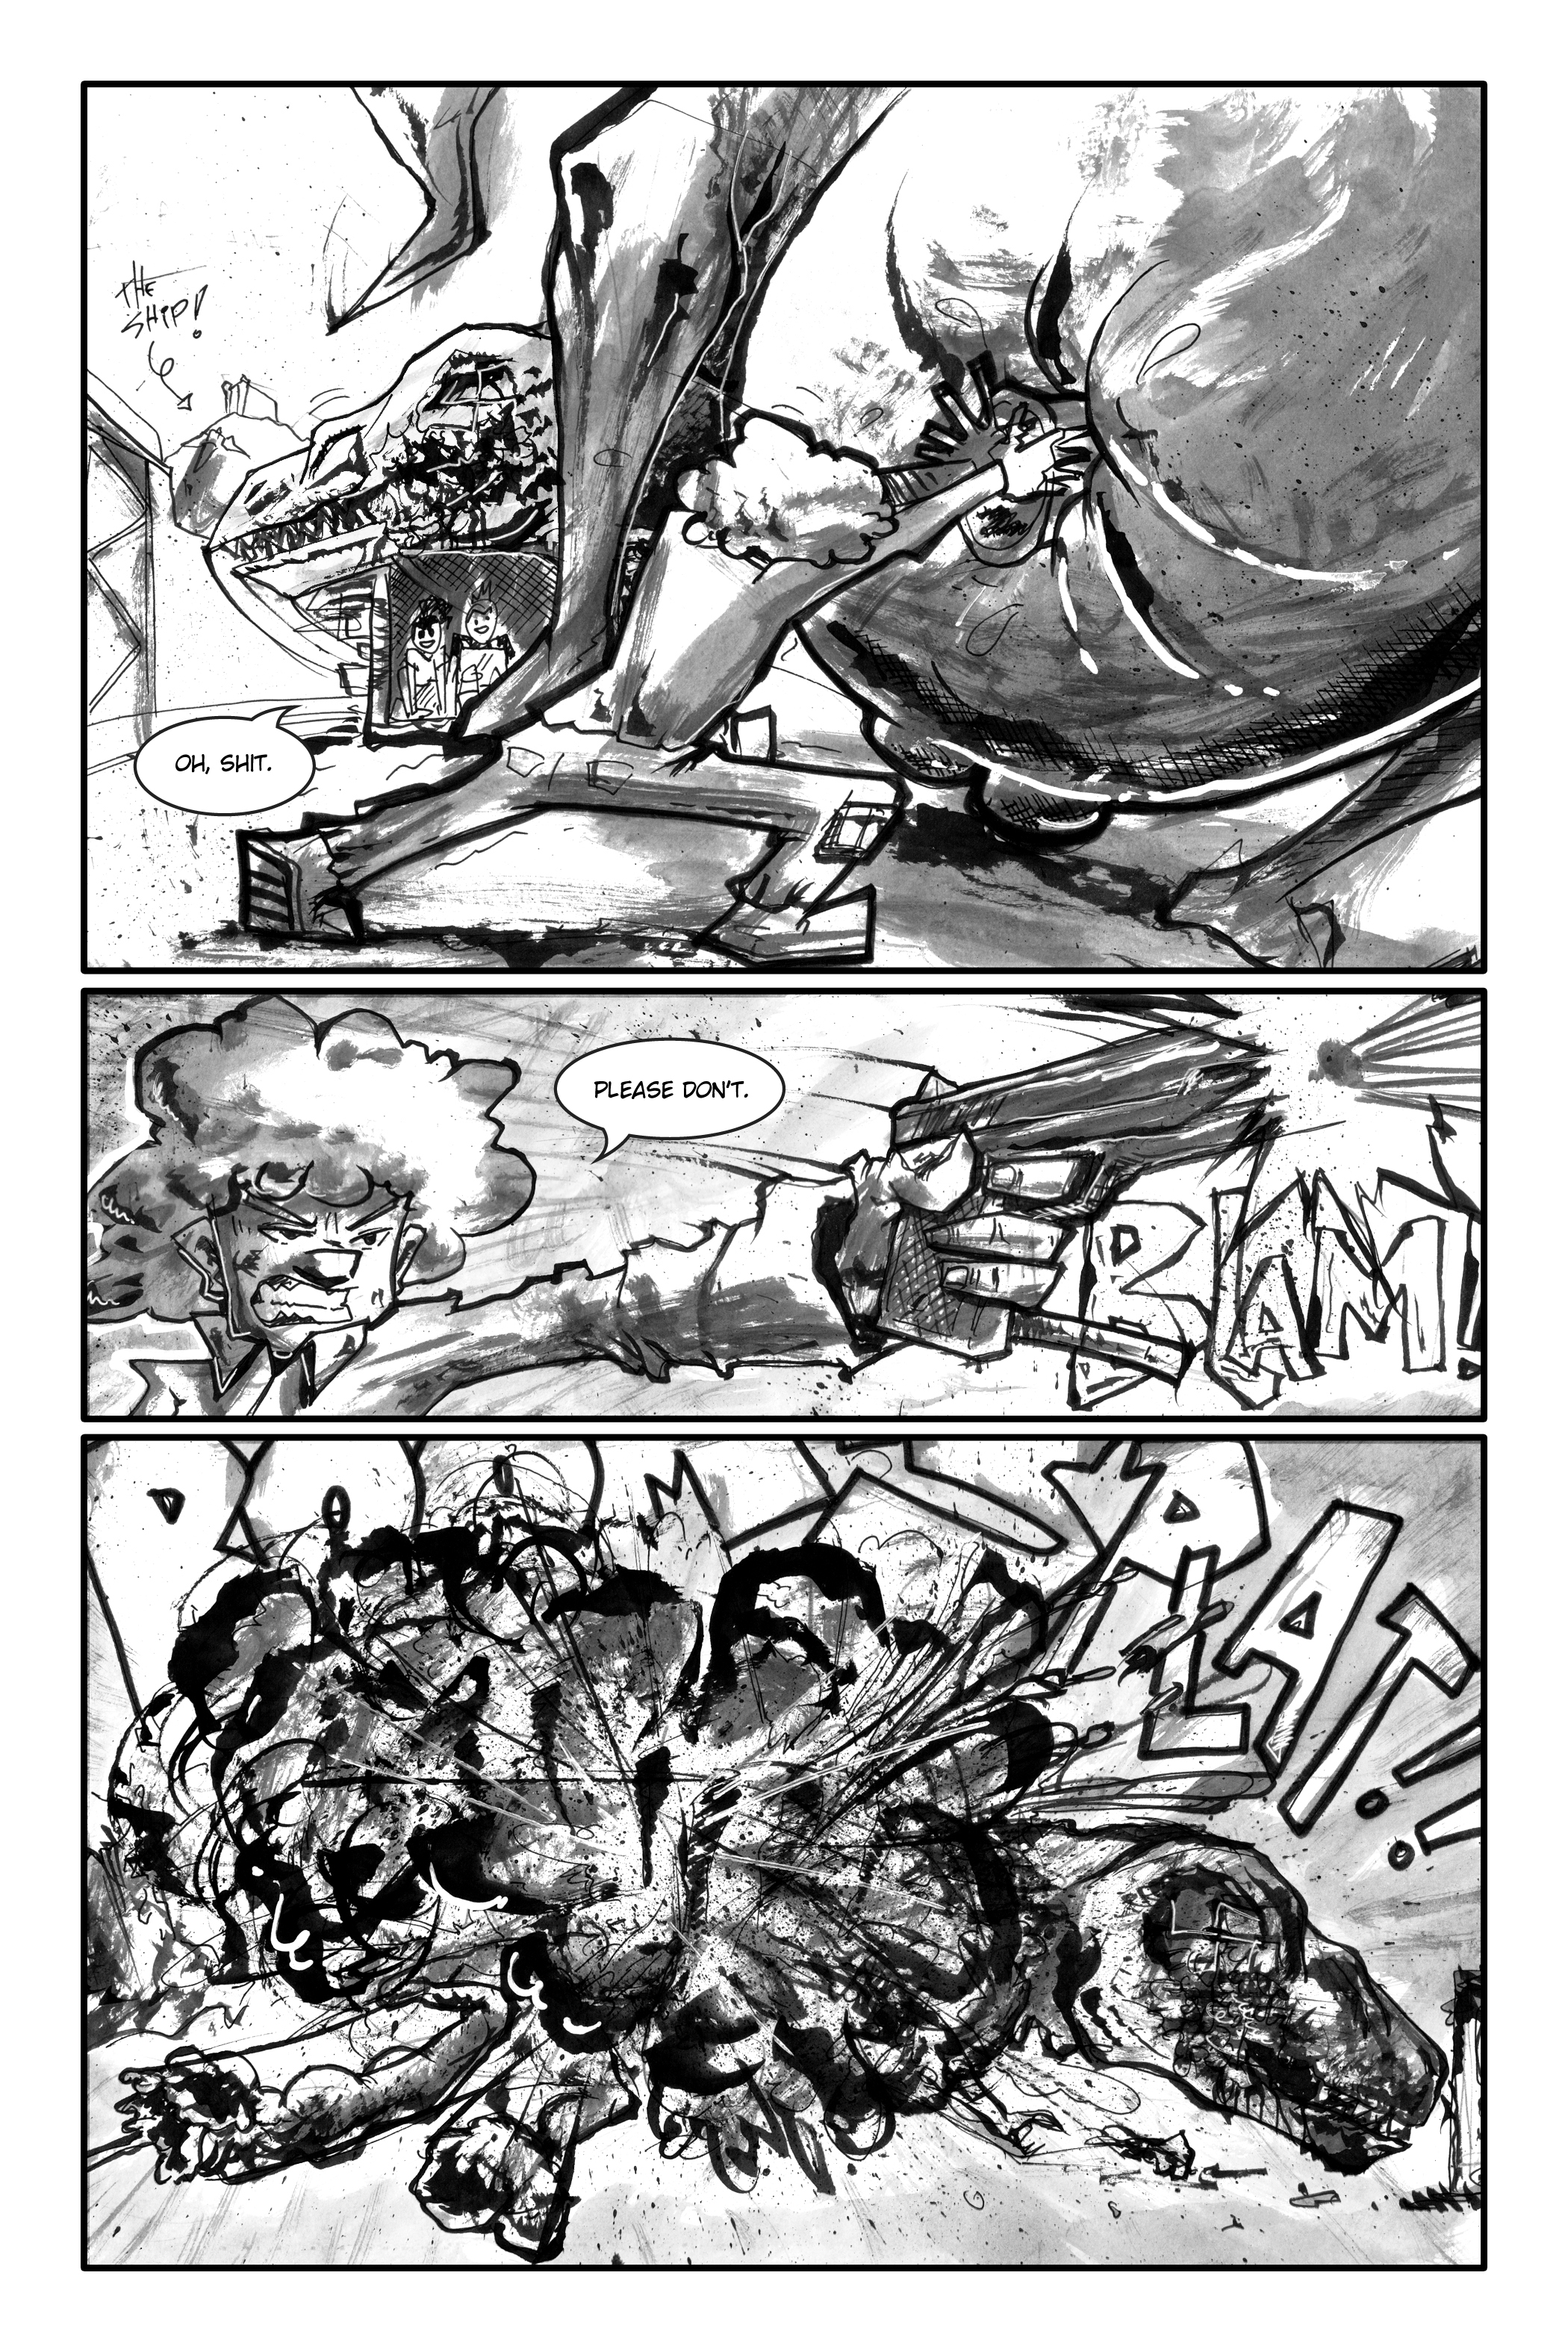 Issue 3, Page 18